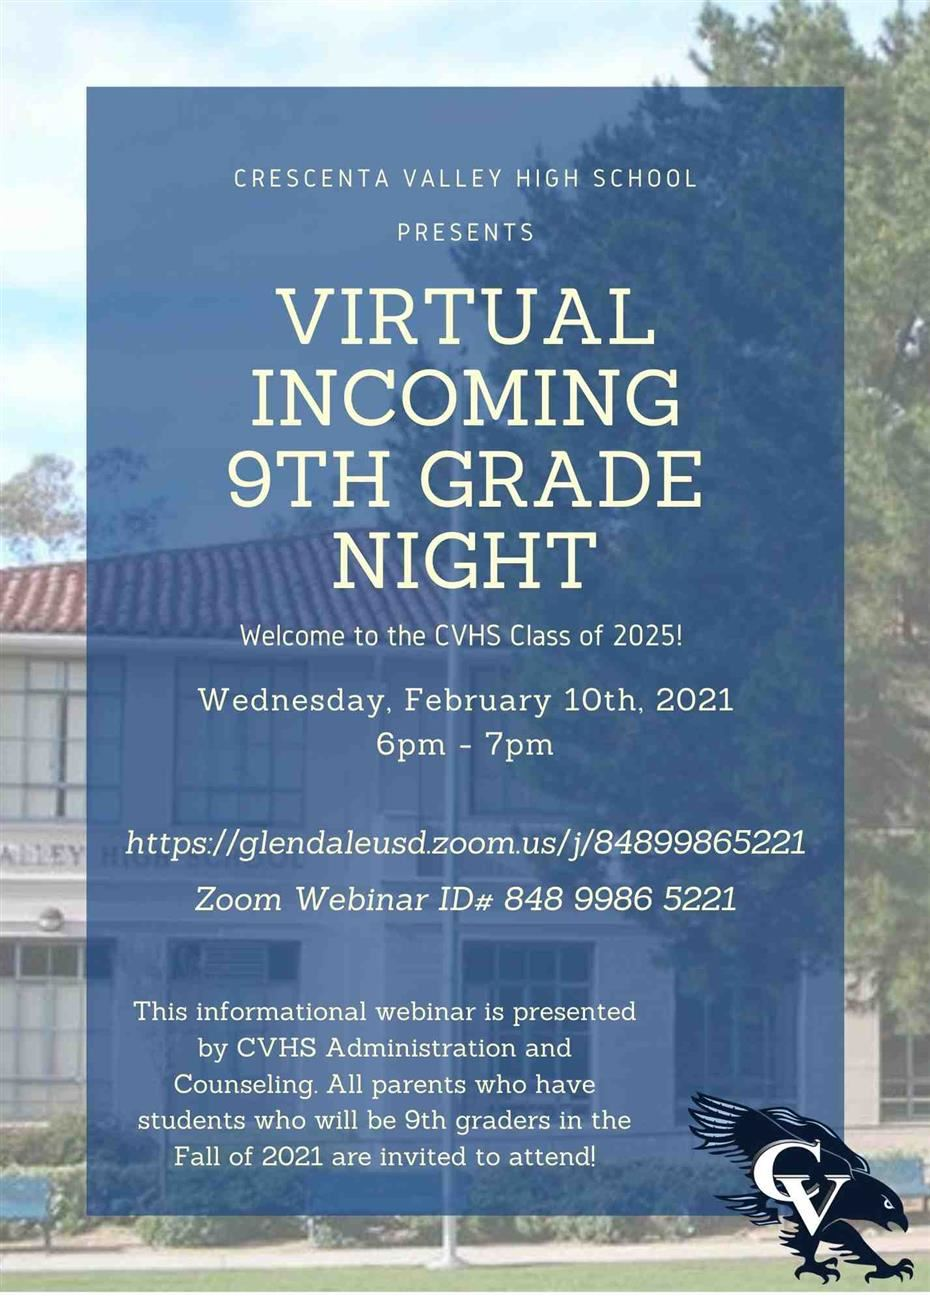 CRESCENTA VALLEY HIGH SCHOOL PRESENTS - VIRTUAL INCOMING 9TH GRADE NIGHT Wednesday, February 10, 2021, 6:00 - 7:00 pm Via Zoom